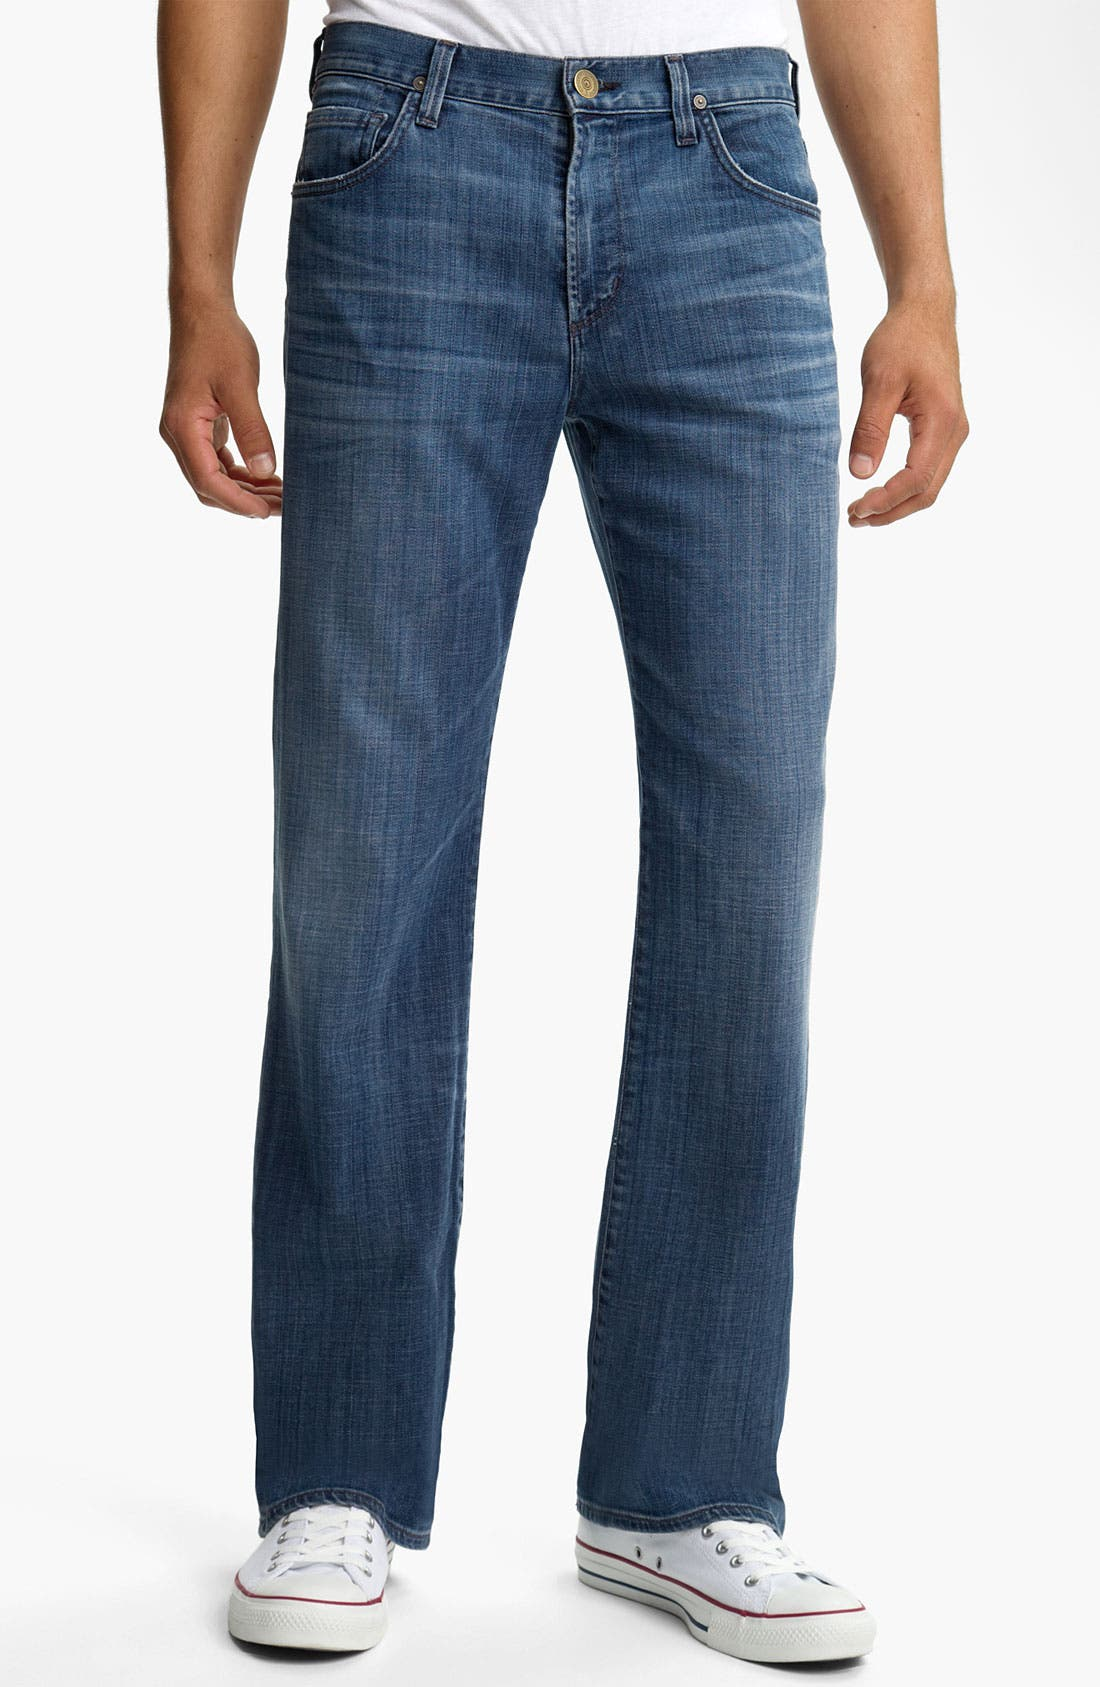 Alternate Image 1 Selected - Citizens of Humanity 'Jagger' Bootcut Jeans (Cosmo)